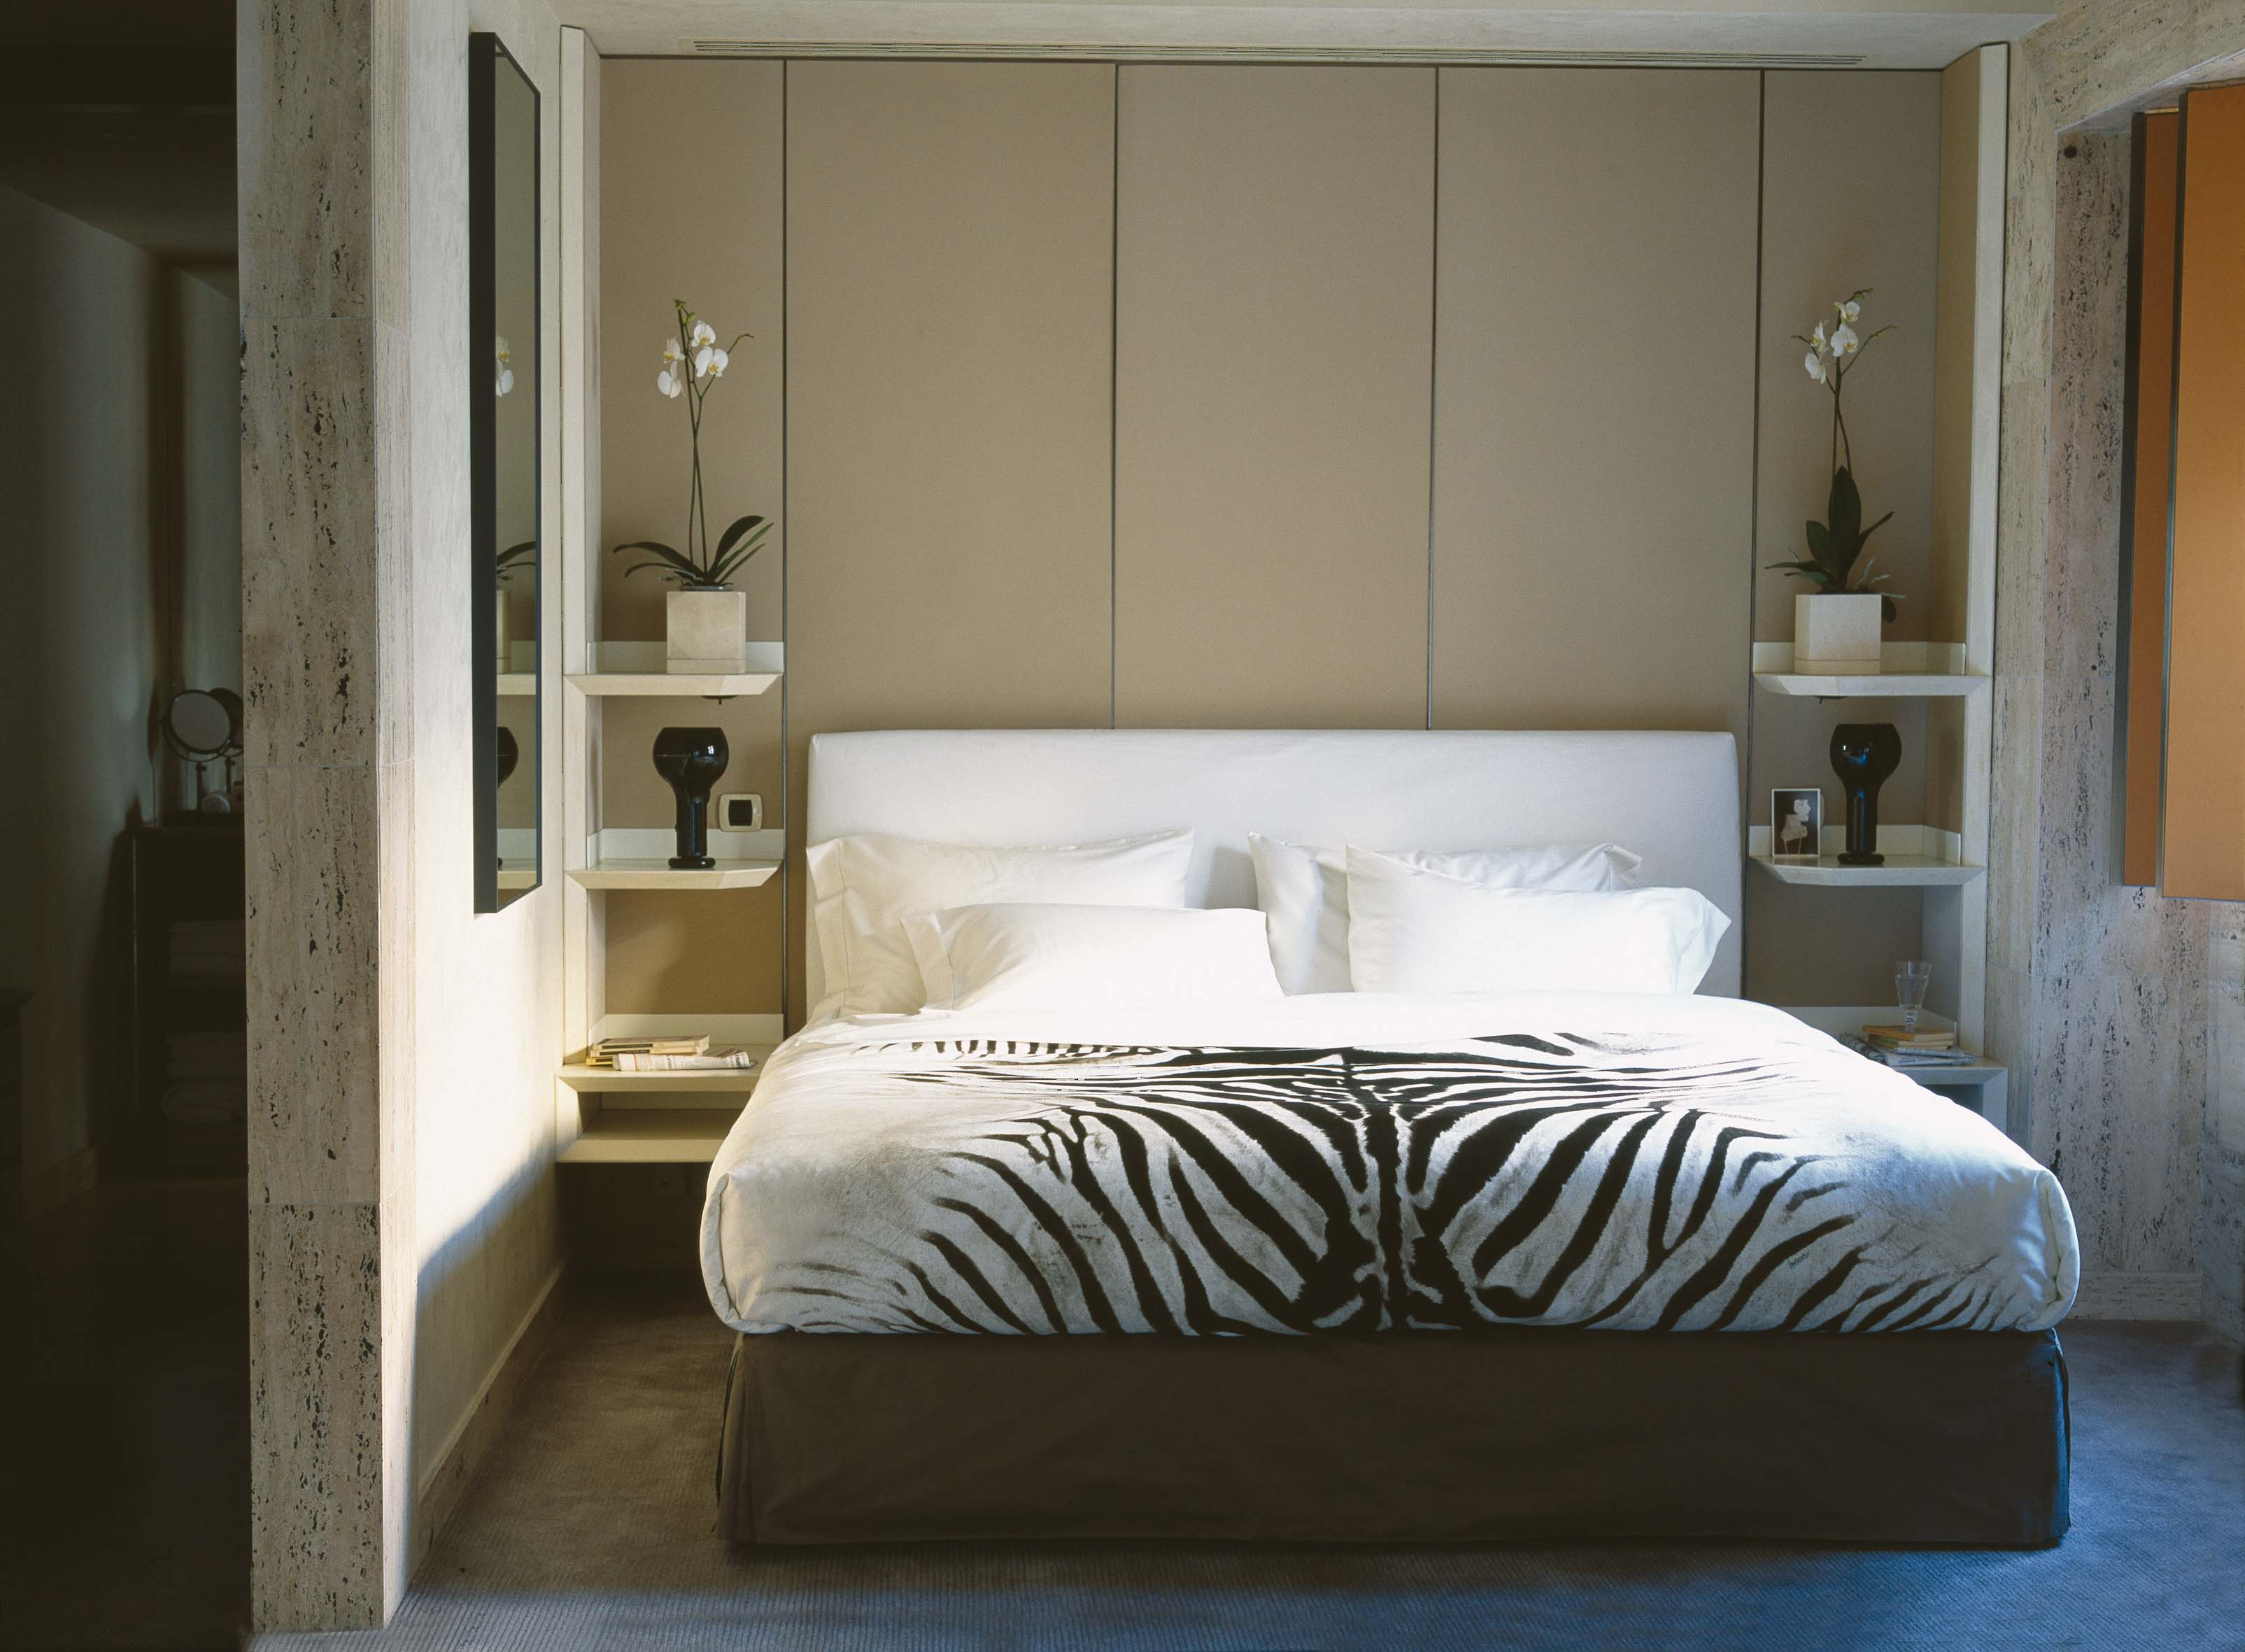 Mascioni's hotel collection uses a 200-thread-count percale for a crisp linen texture.